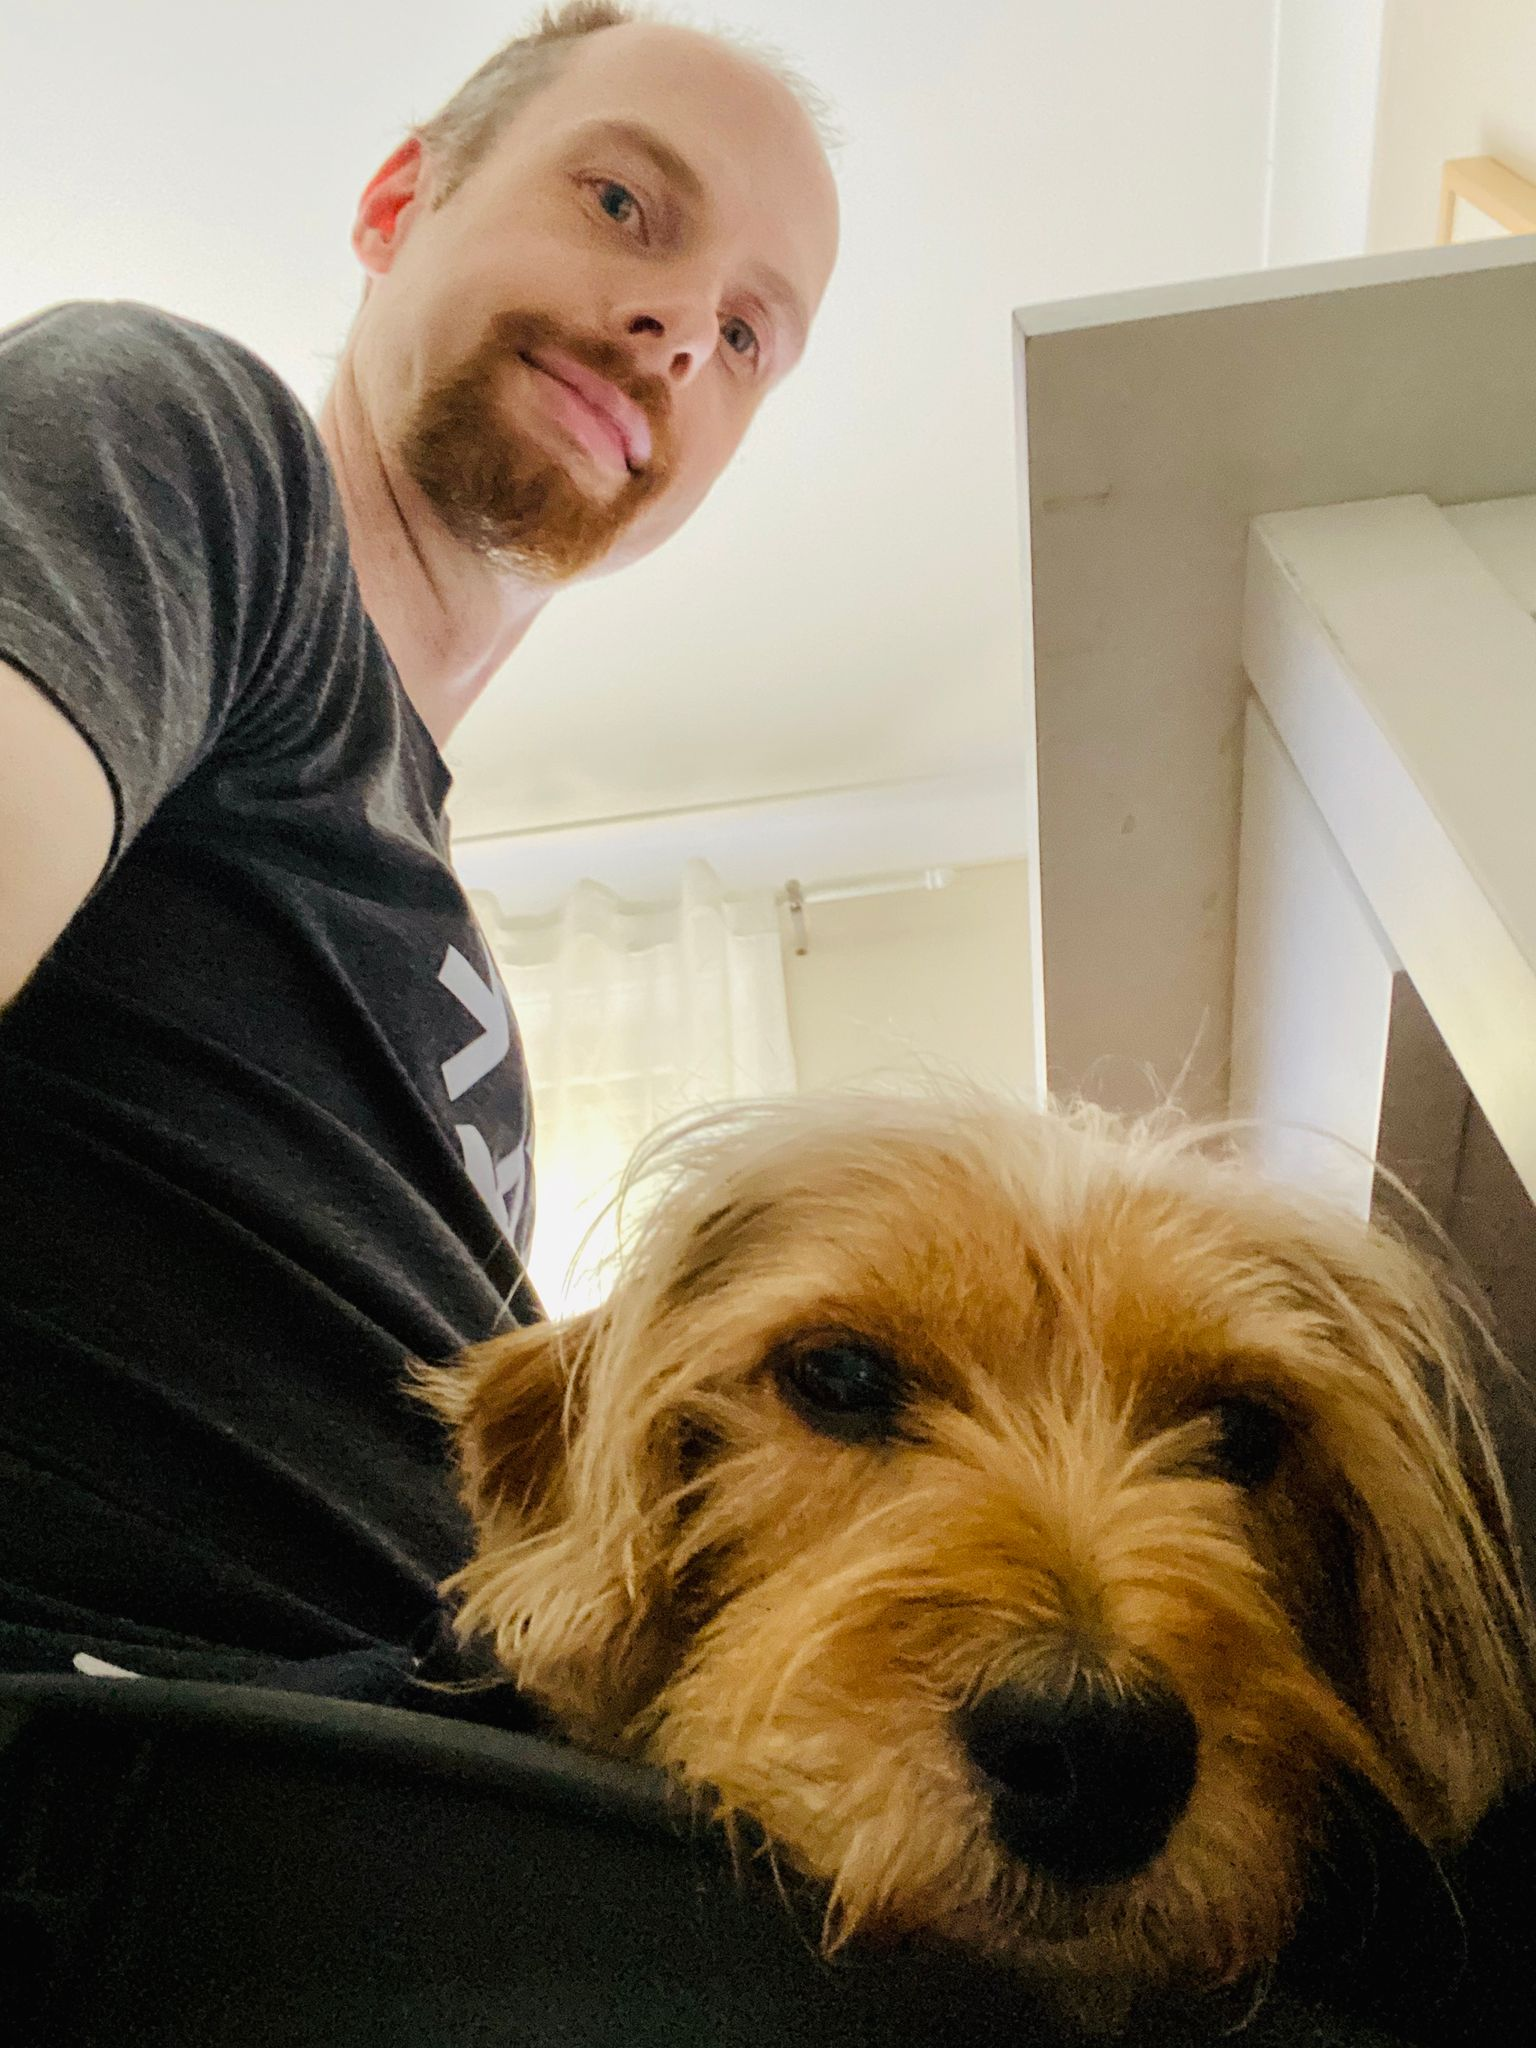 A photo taken from about leg-level next to my computer chair looking up as I — a white male with a red goatee —  look at the camera. A small scruffy blonde dog is lying in my lap also looking at the camera, all that's visible of him is his head. He looks very sleepy.